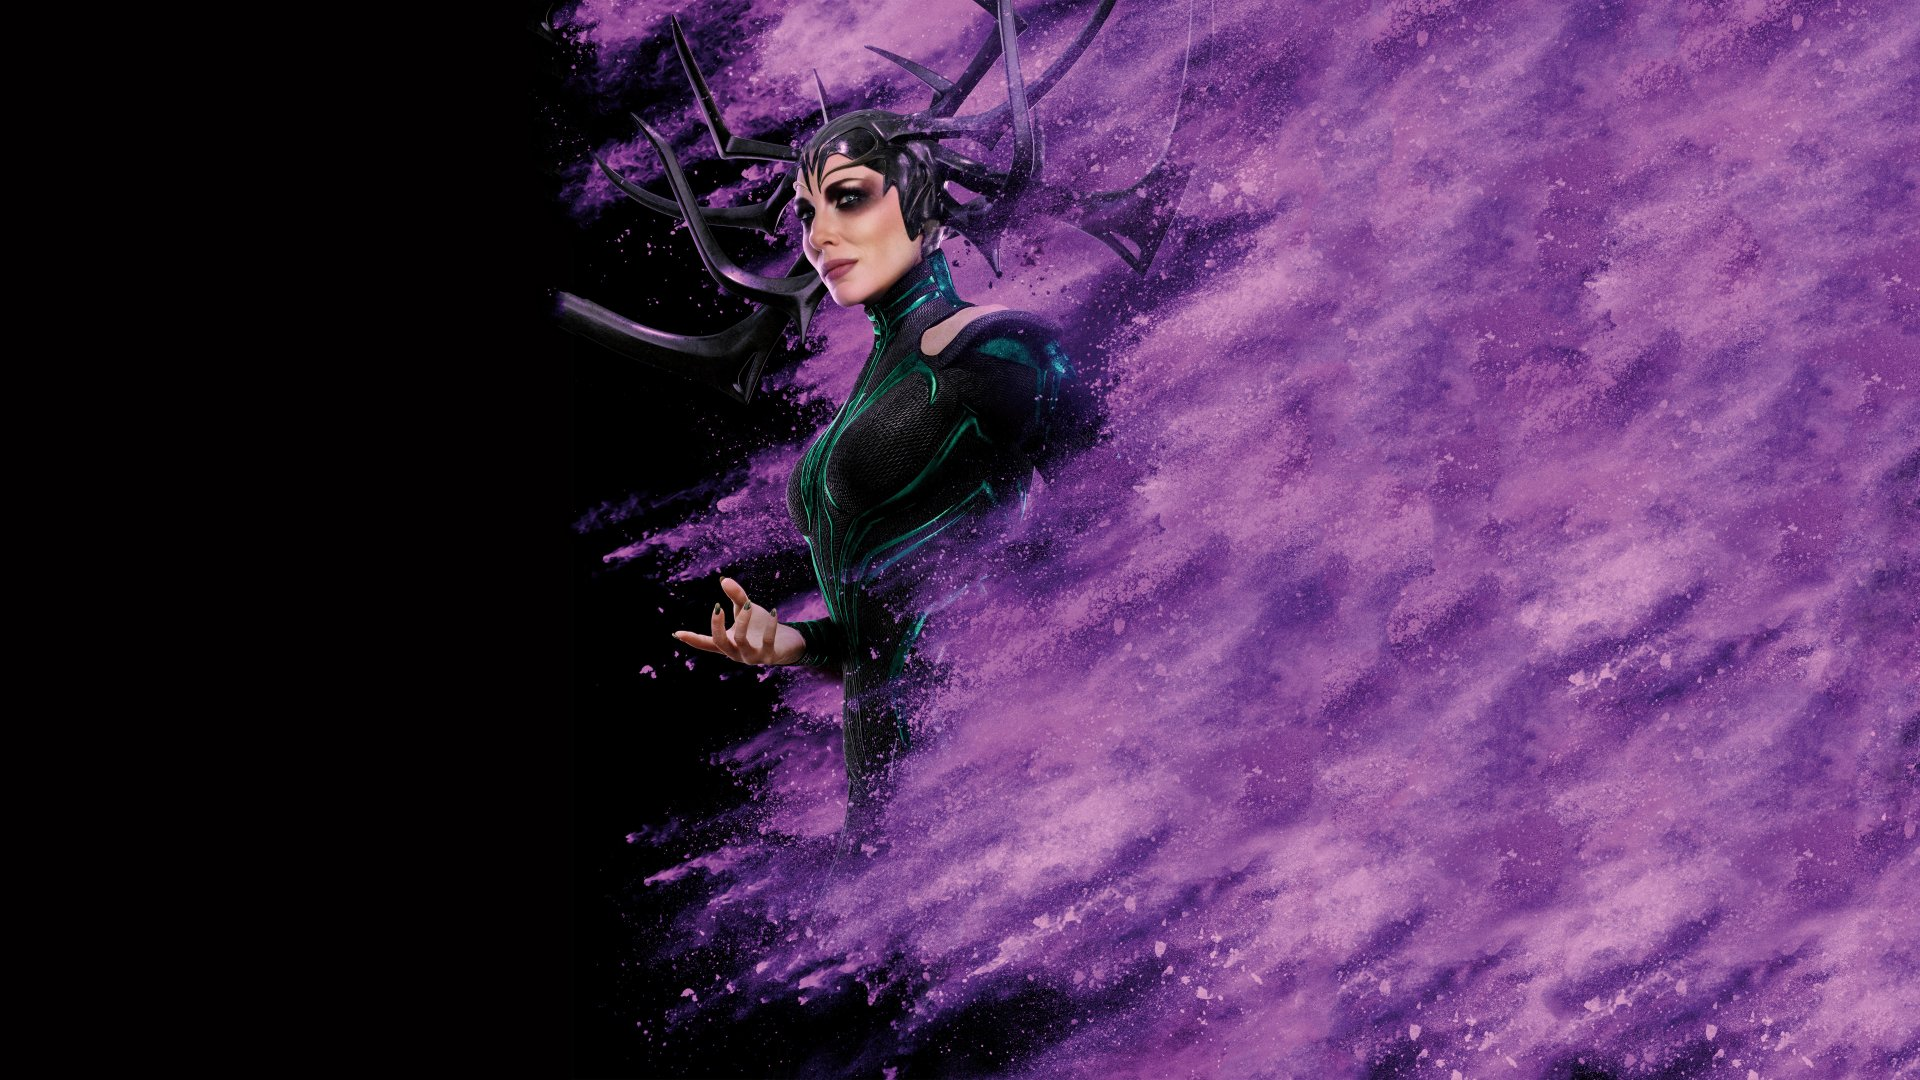 Movie - Thor: Ragnarok  Cate Blanchett Hela (Marvel Comics) Wallpaper